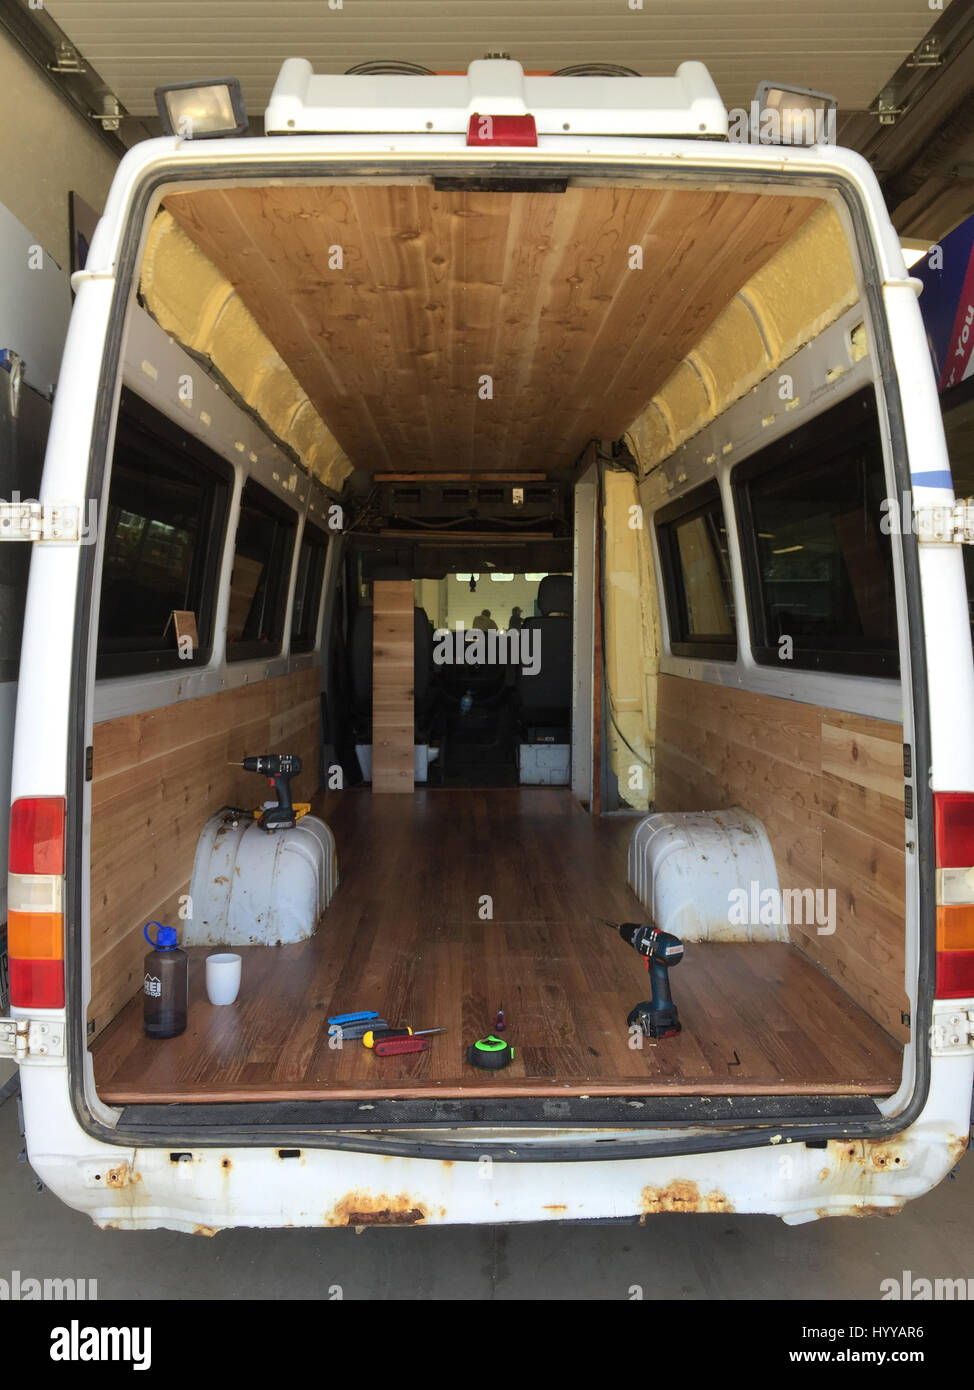 MEET The Couple Who Shunned Traditional Office Jobs And Spent 5000 Converting Their Dodge Sprinter Van Into A Home To Live Life On Road With